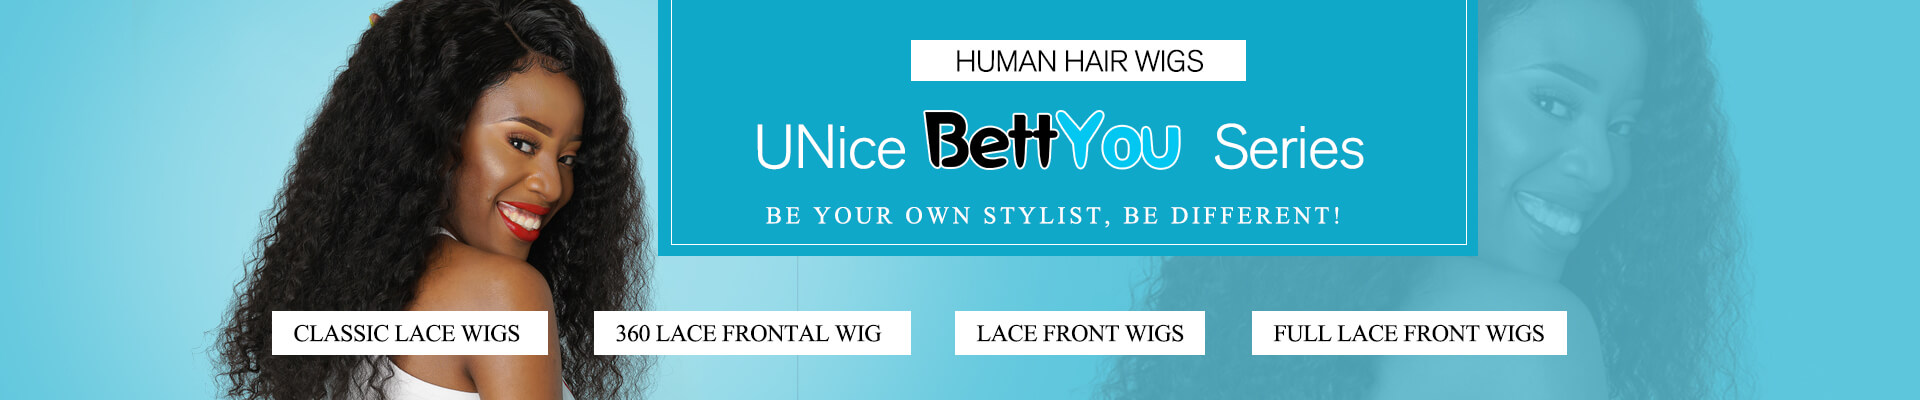 UNice Bettyou Series: 100% Human Hair Wigs